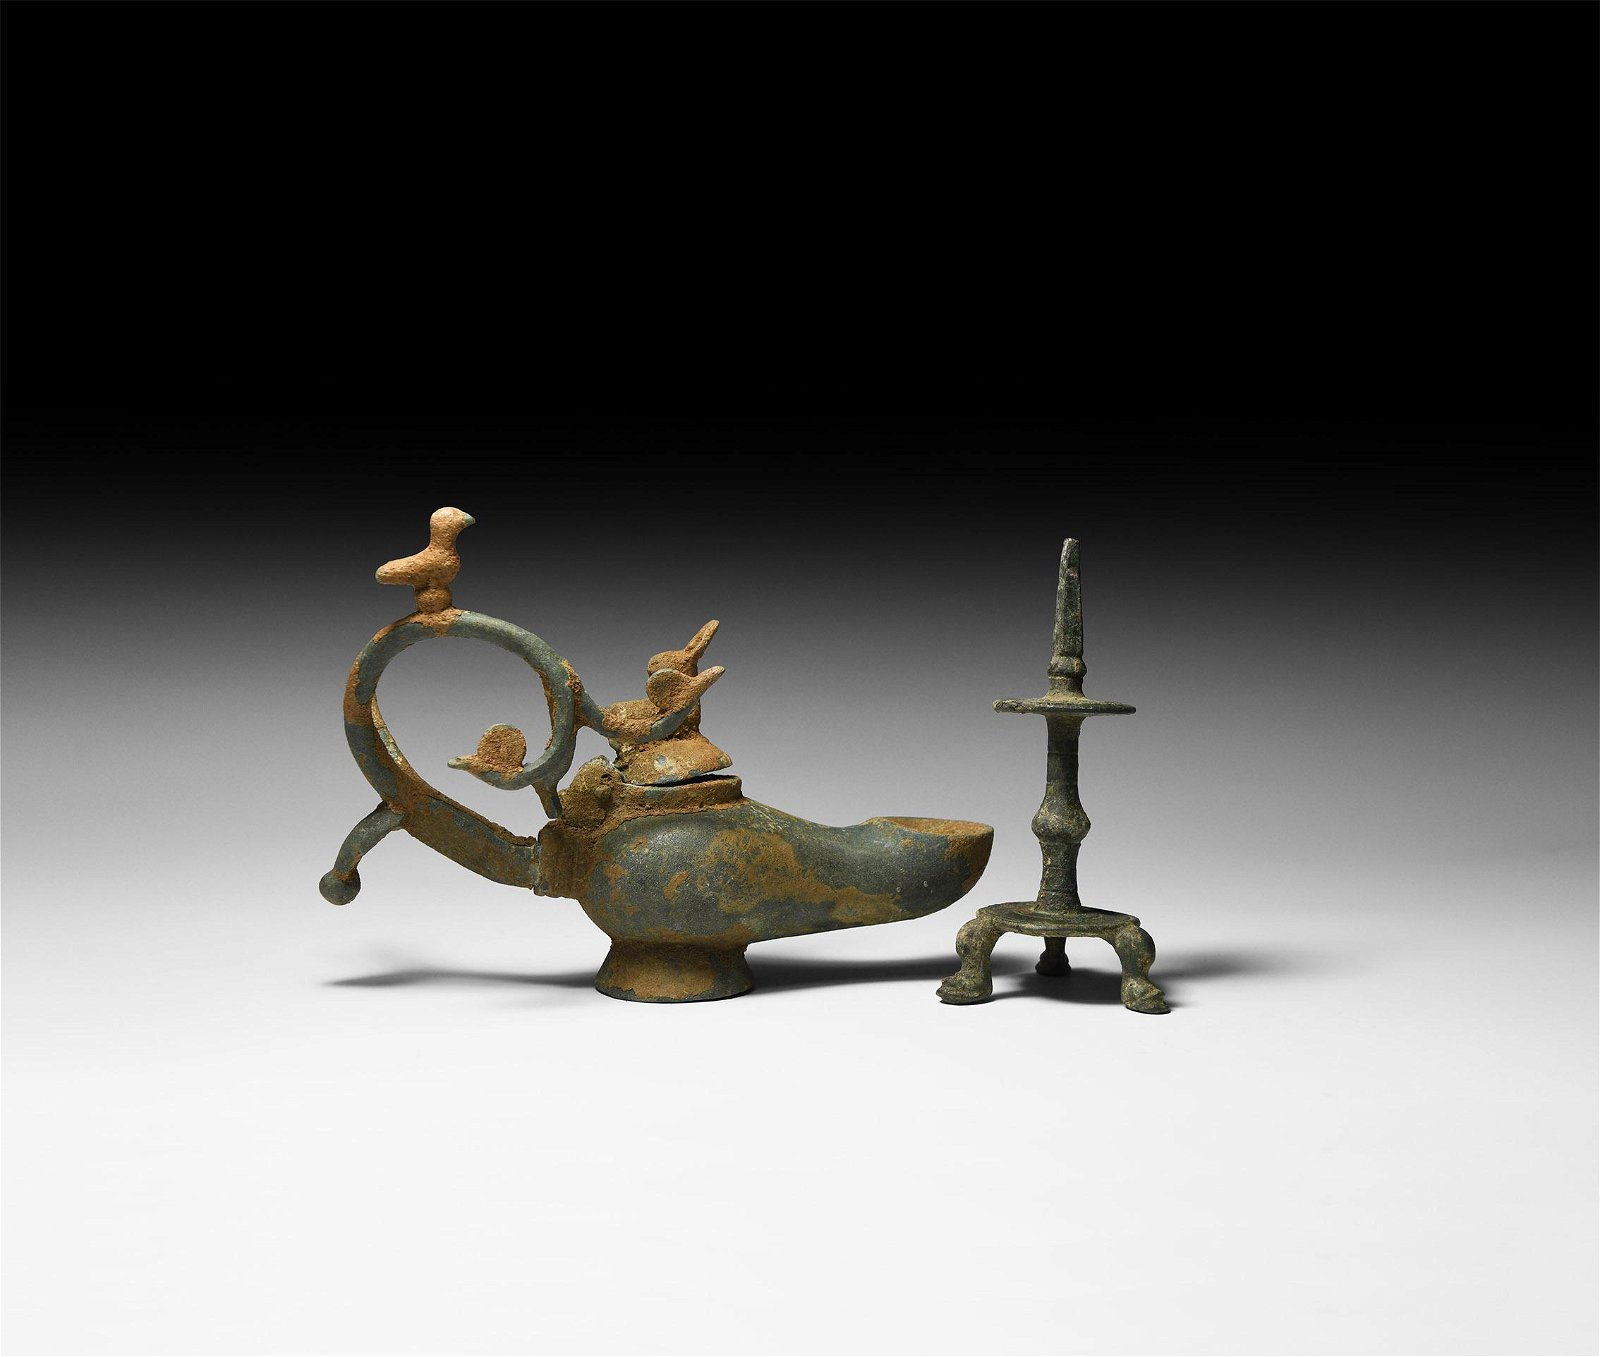 Roman Oil Lamp with Animals and Tripod Stand